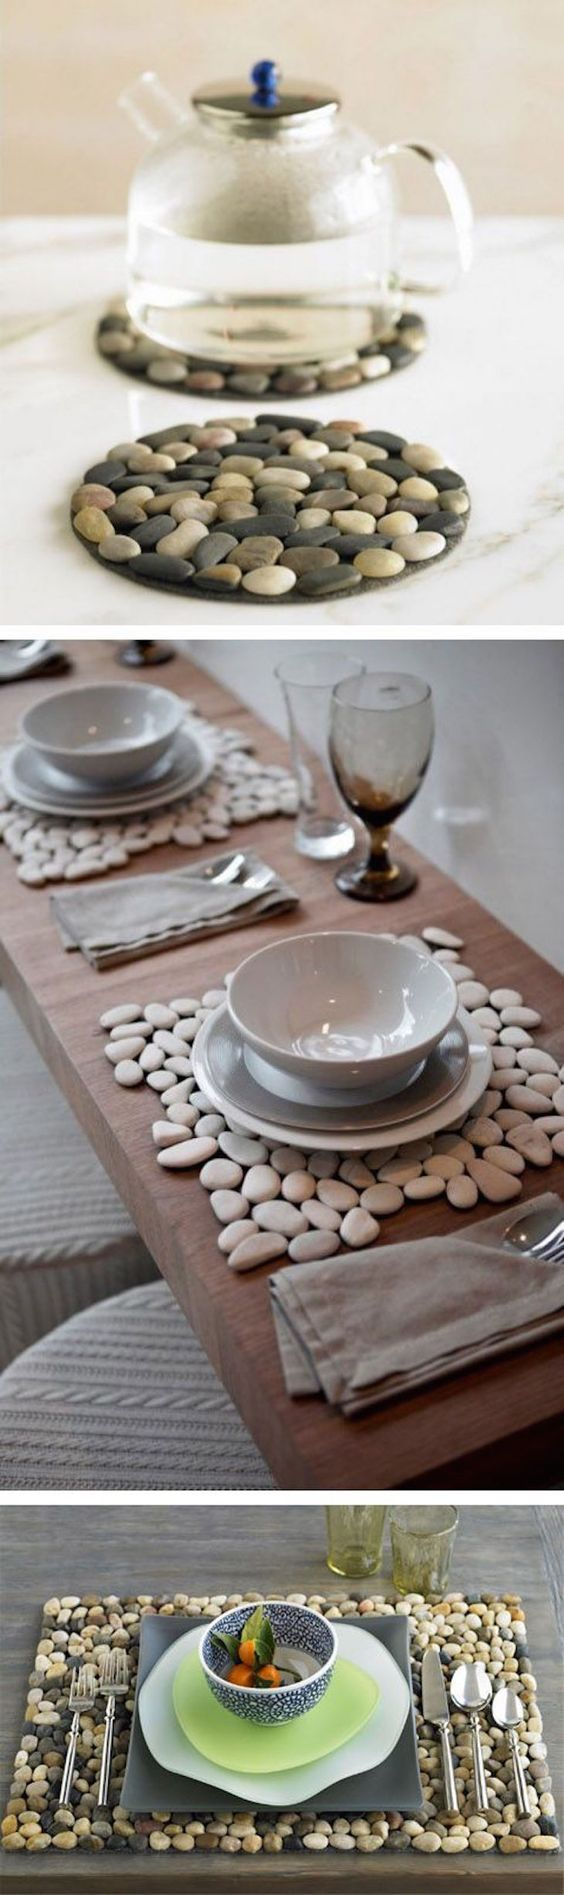 TOP 10 Beautiful Ways To Decorate With Pebbles. Best 25  Handmade home decor ideas on Pinterest   Handmade home